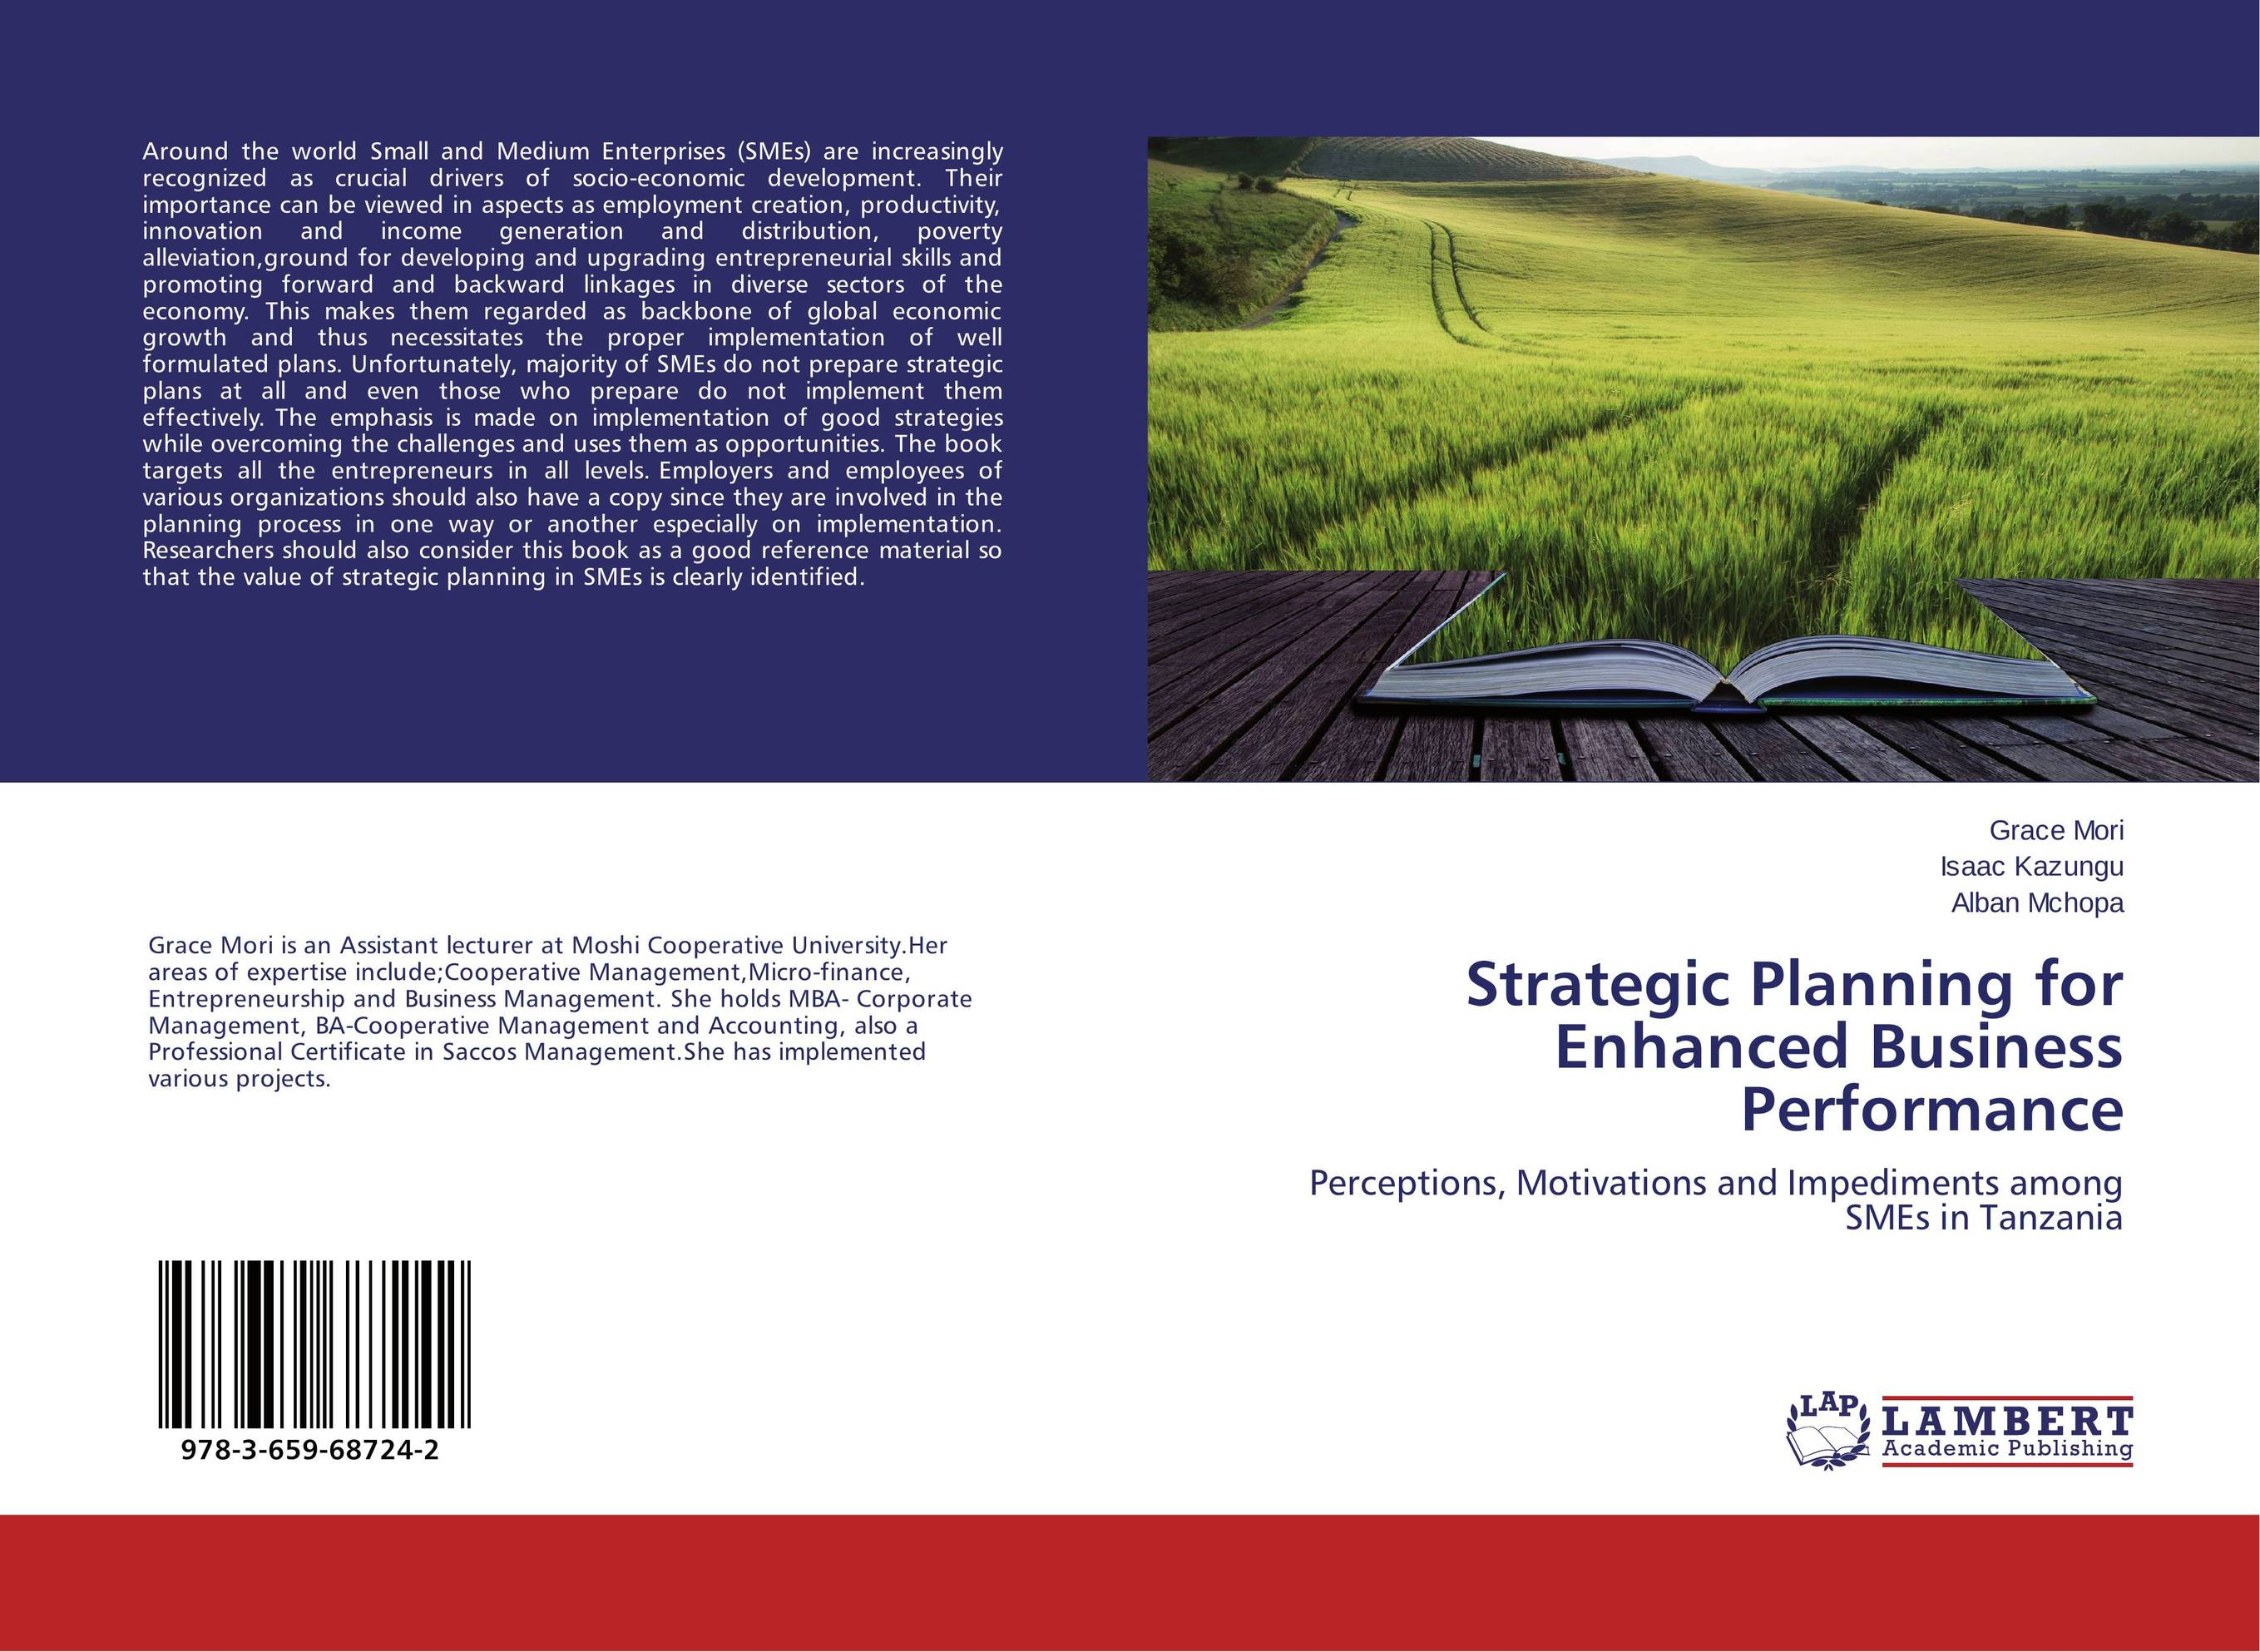 Strategic Planning for Enhanced Business Performance implementation of strategic plans